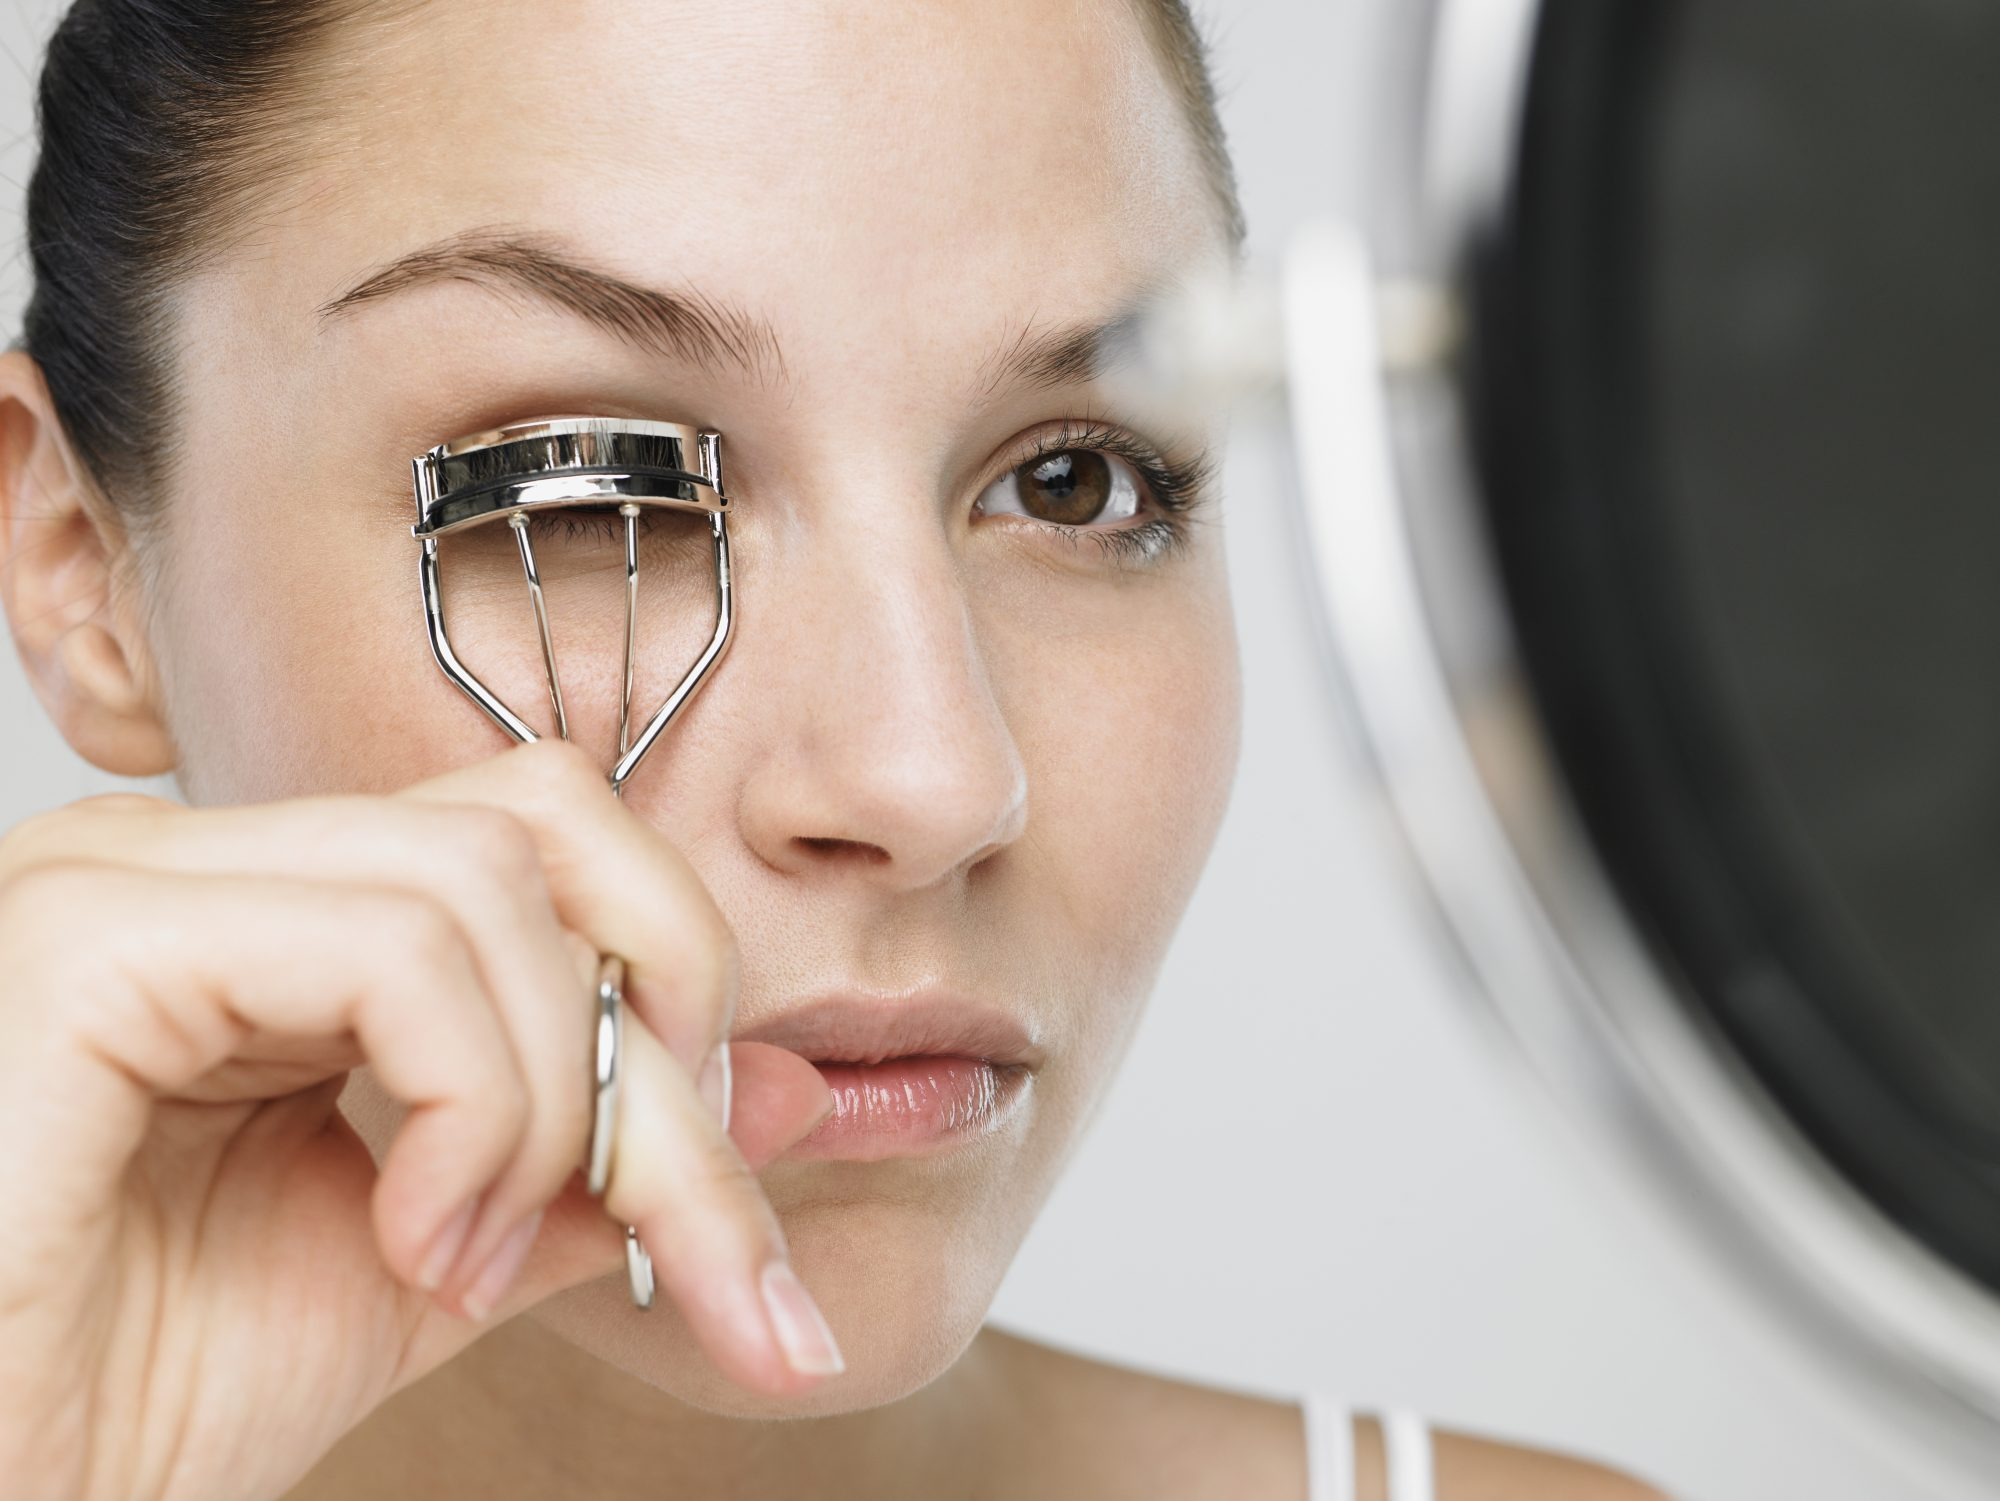 How To Use An Eyelash Curler The Right Way Southern Living